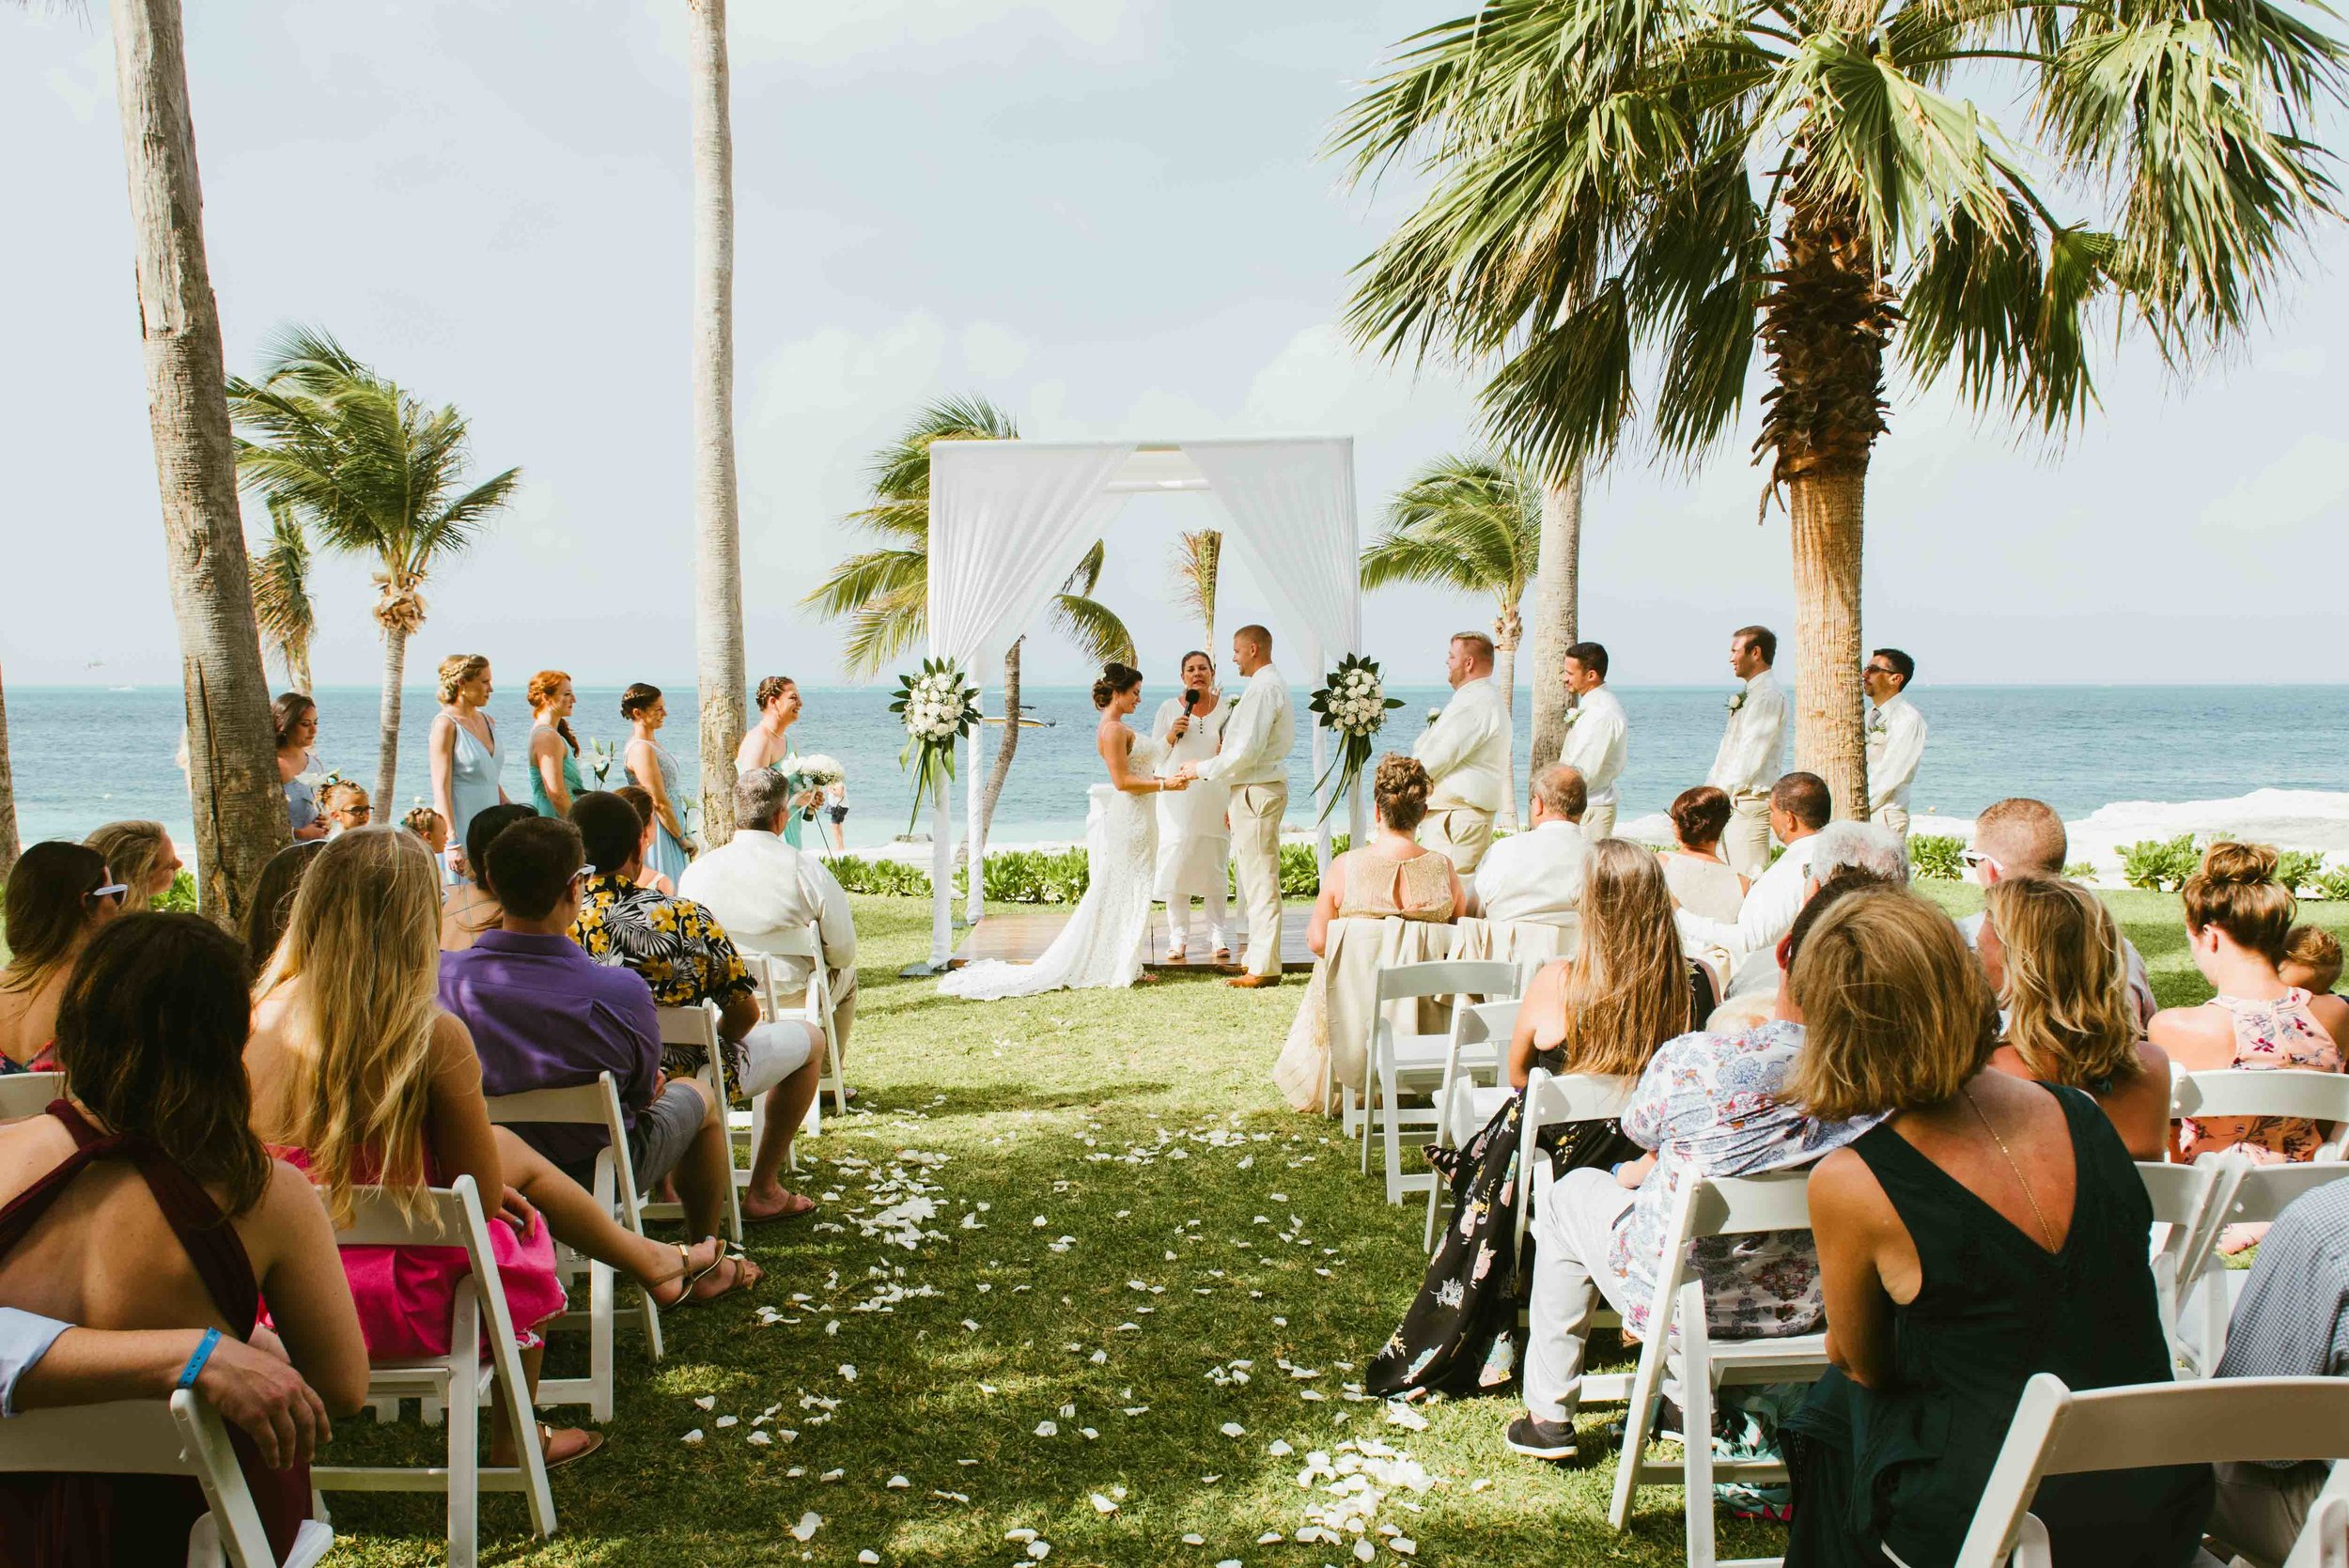 Beach-Wedding-Photography-Cancun-Elopement-Destination-Elopement-Photography-Destination-Beach-Wedding-+Costa-Rica-Wedding-Photography-Beach-Wedding-Photos-teresawoodhull-Cancun-Elopement-Beach-Wedding-+Sunset-Beach-Wedding-Fotografia-de-bodas-Nicoya-Peninsula-Elopement-Photographer-Santa-Teresa-Elopement-Photographer-Adventure-elopement-photographer-Santa-Teresa-Wedding-Photographer-Adventure-Wedding-Boda-playa-santa-teresa-Adventure-Wedding-Photography-Adventure-Wedding-Photographer-Beach-Elopement-Beach-Elopement-Photos-maddie-mae-Beach-Elopement-Photographer-Destination-Elopement-Photographer-Sunset-Beach-Elopement-Mexico-wedding-photographer-cabo-wedding-photographer-mexico-wedding-mexico-destination-wedding-cancun-destination-wedding-cancun-elopement-photographer-playa-del-carmen-wedding-playa-del-carmen-destination-wedding-photographer-playa-del-carmen-wedding-photography-Nicoya-Peninsula-Wedding-Photography-Nicoya-Peninsula-Wedding-Photographer-Nicoya-Peninsula-Elopement-Photography-riu-ceremony-riu-cancun-wedding-fotografo-de-bodas-mexico